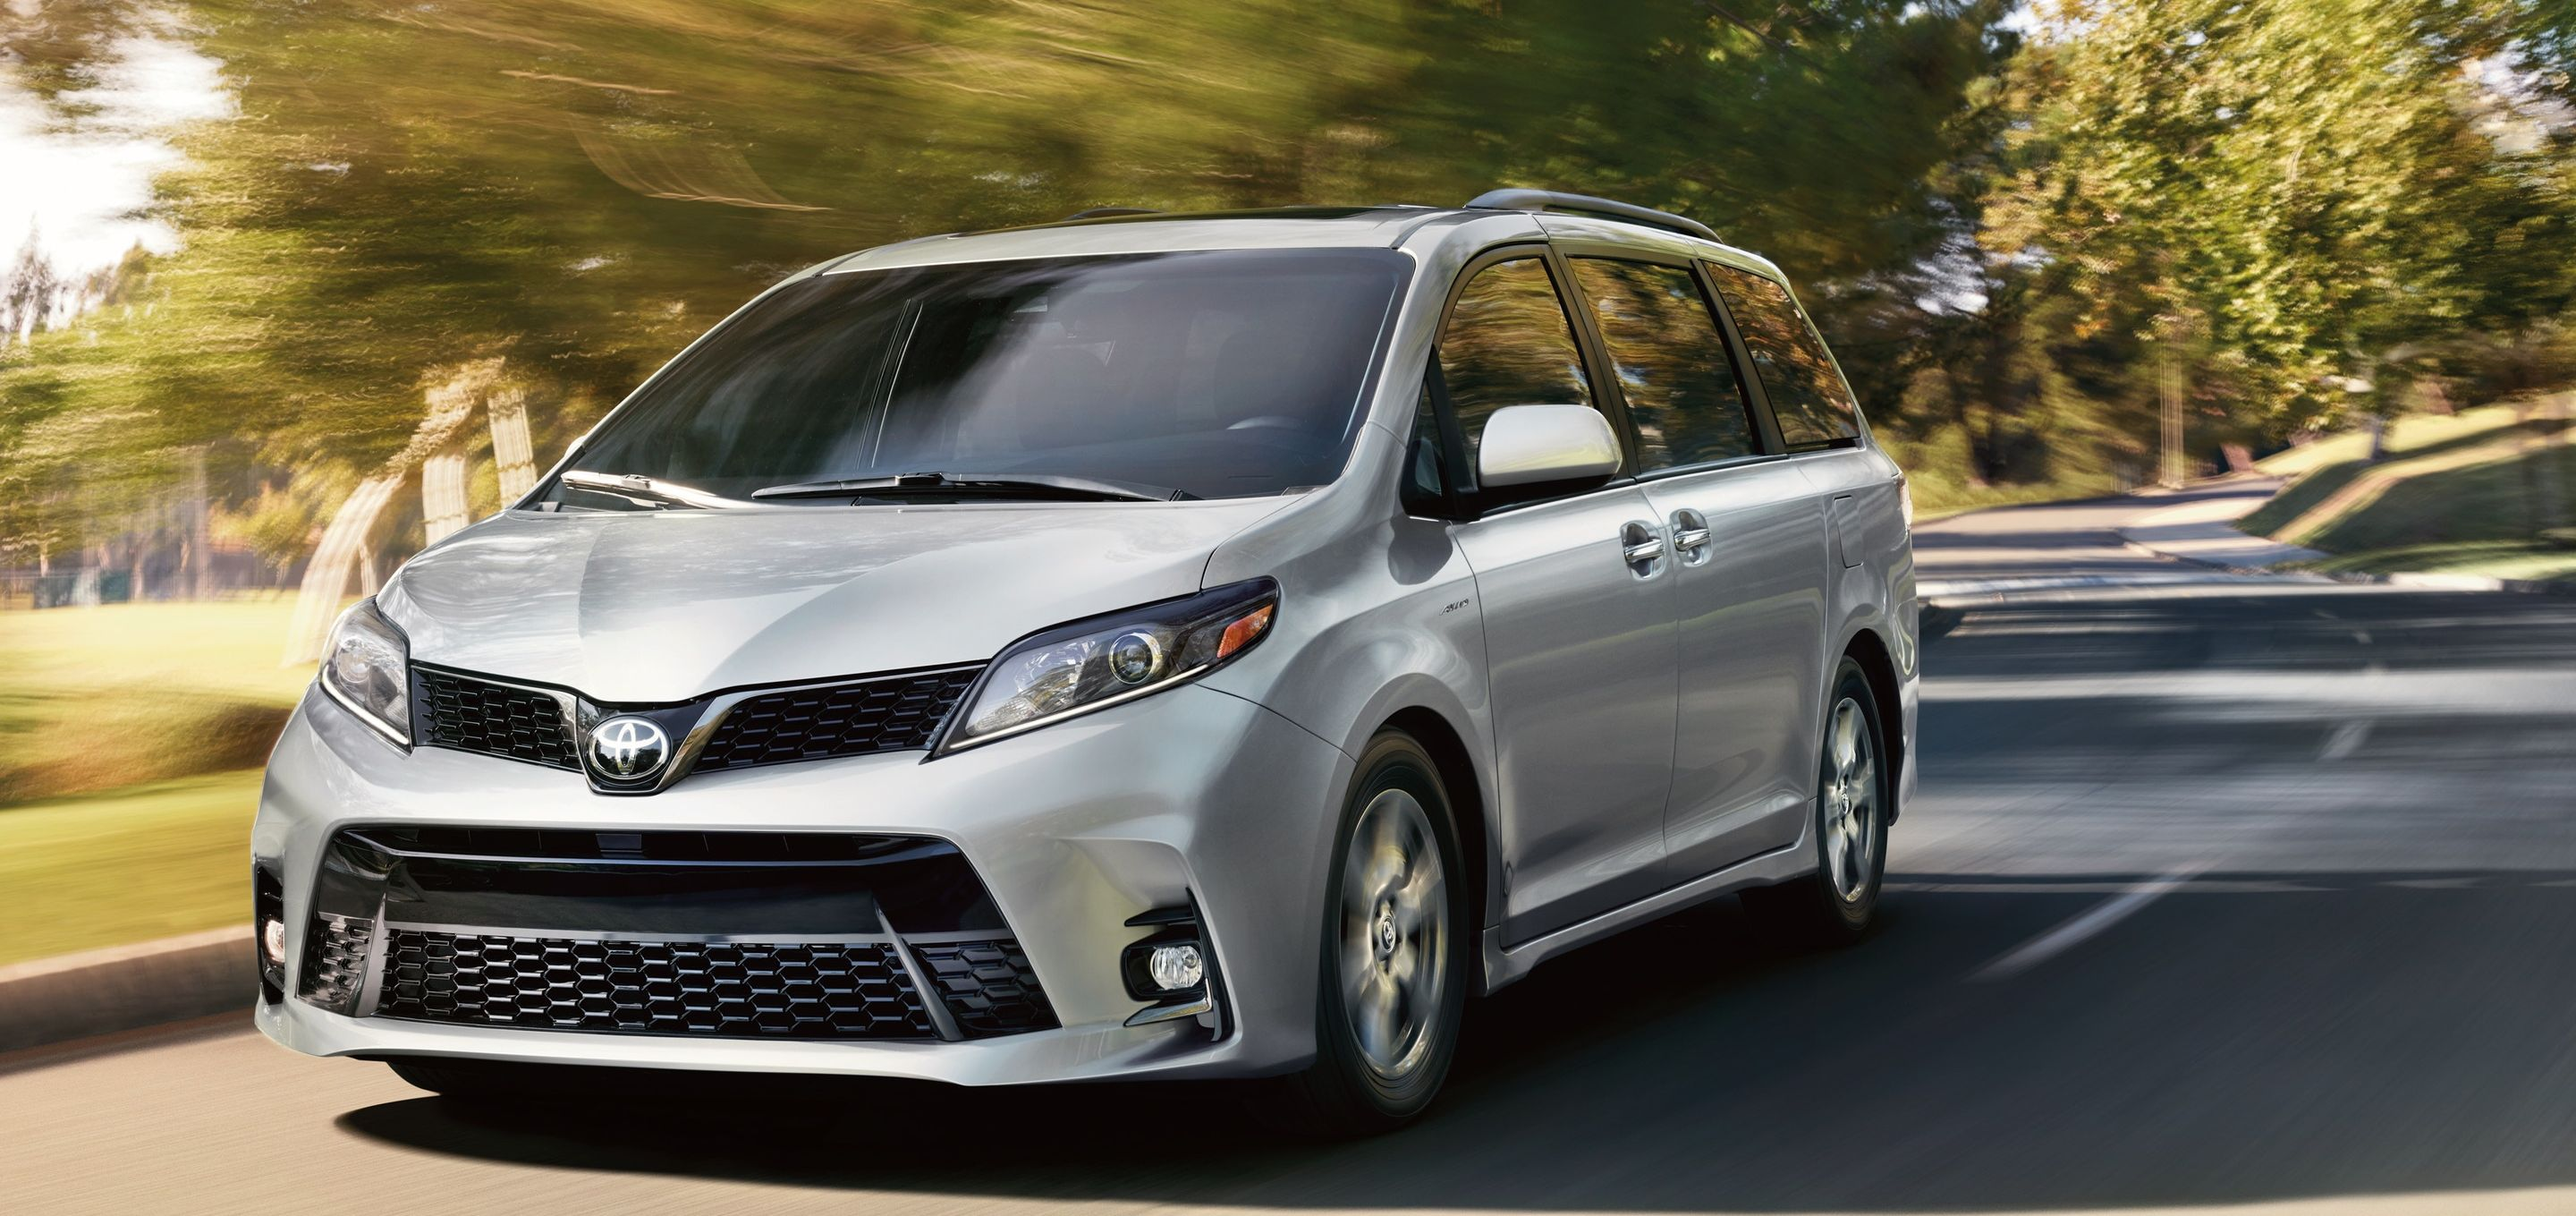 2020 Toyota Sienna Leasing near Kennett Square, PA